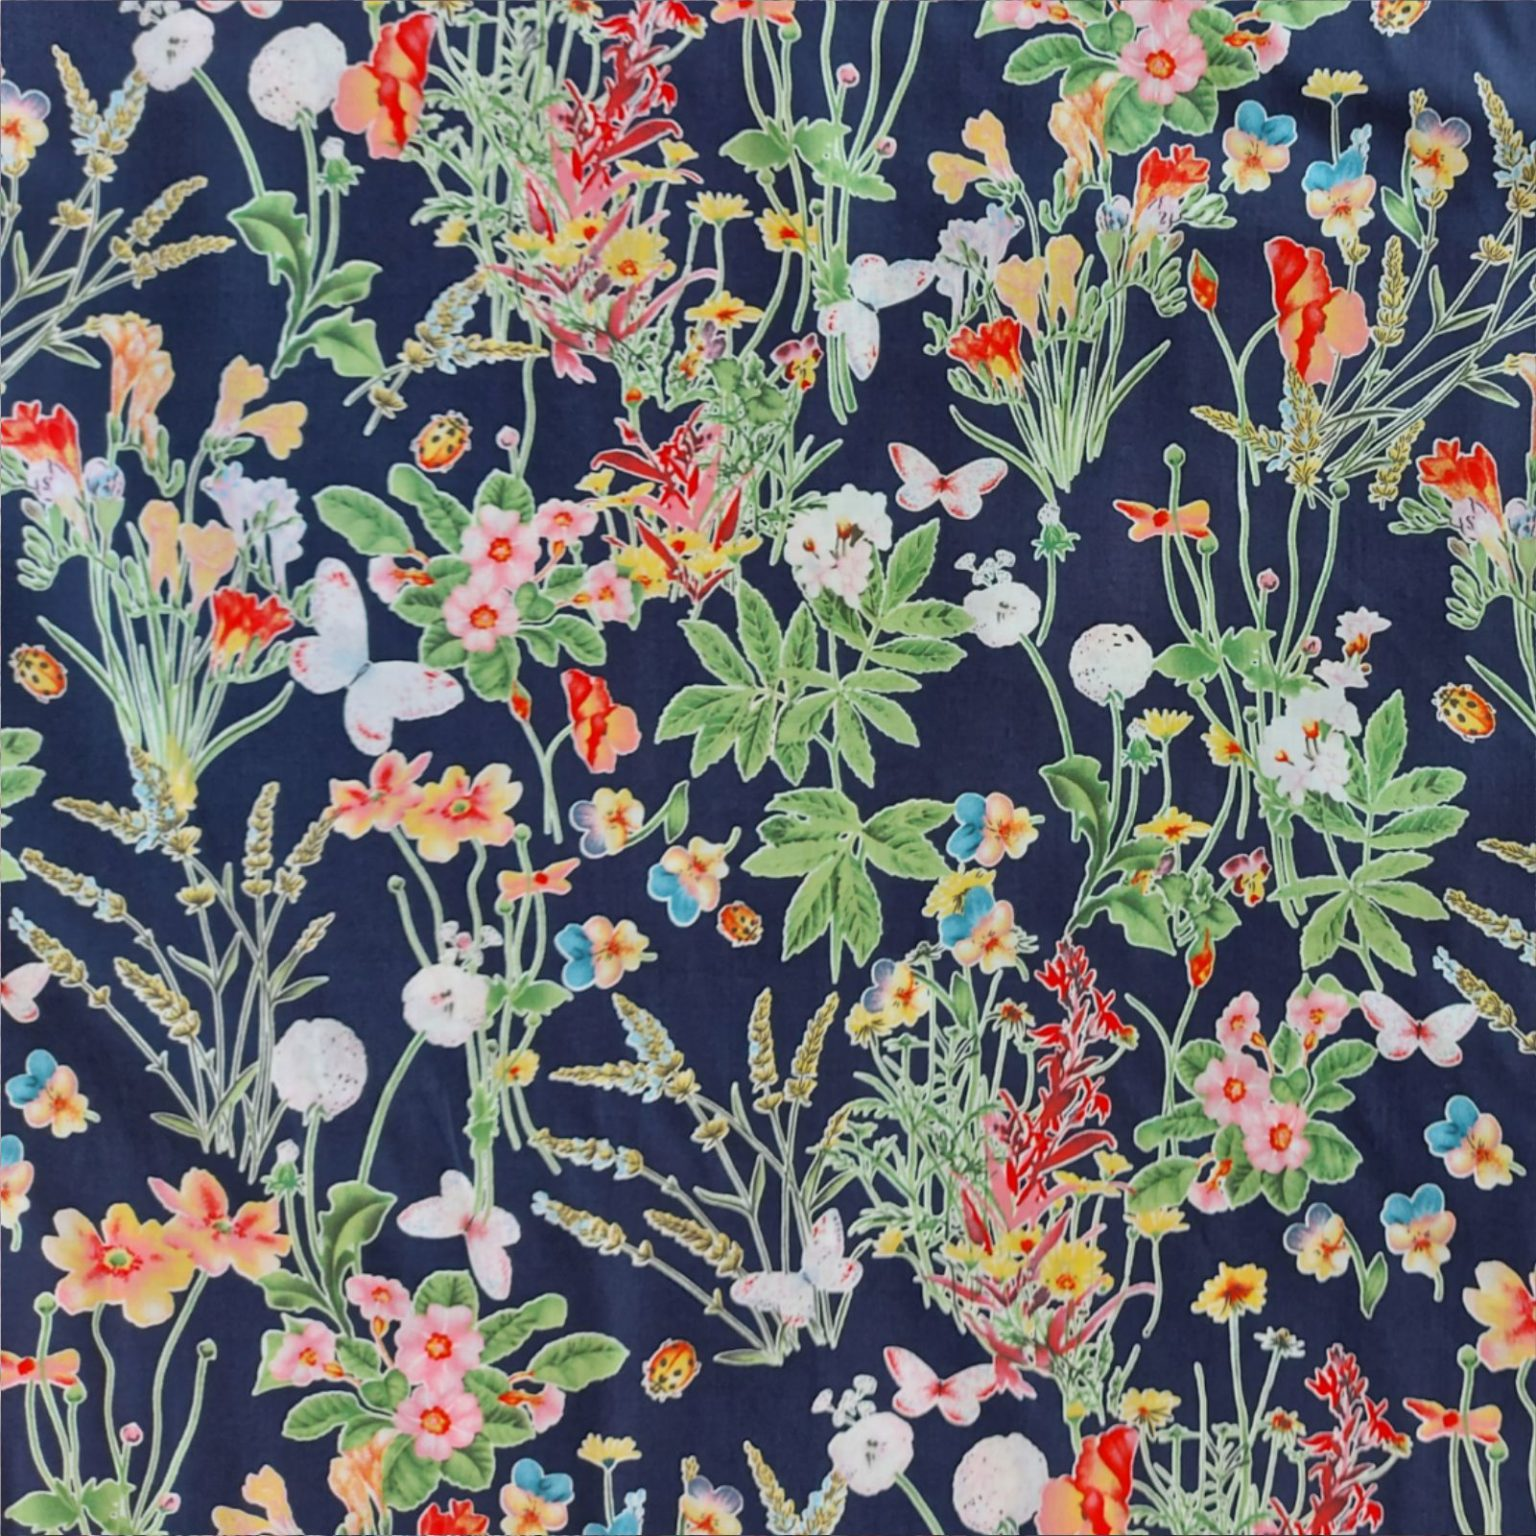 Dress Fabric | Lavender Ladybirds Navy Blue Pima Cotton Lawn | More Sewing